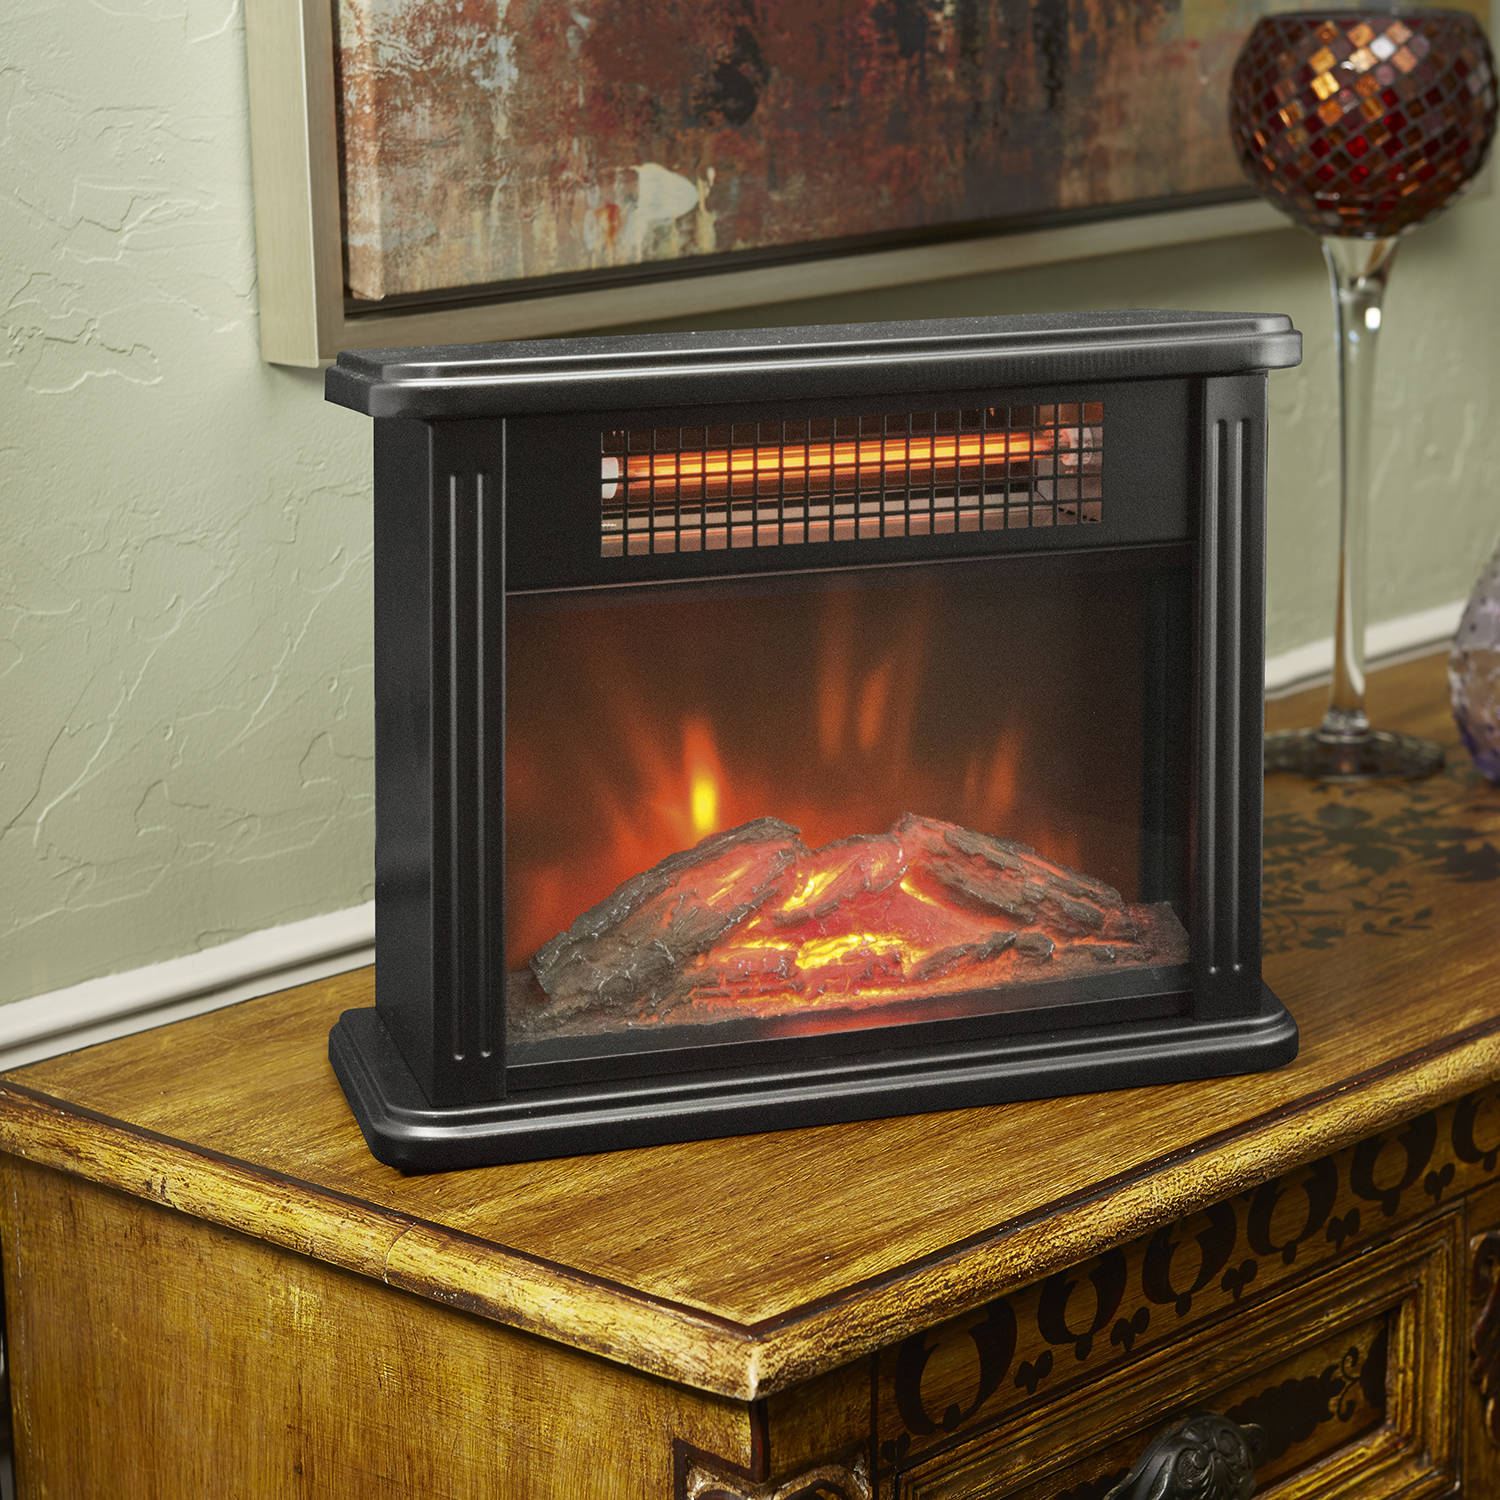 Lifesource Tabletop Infrared Heater with Flame Effect - Walmart.com